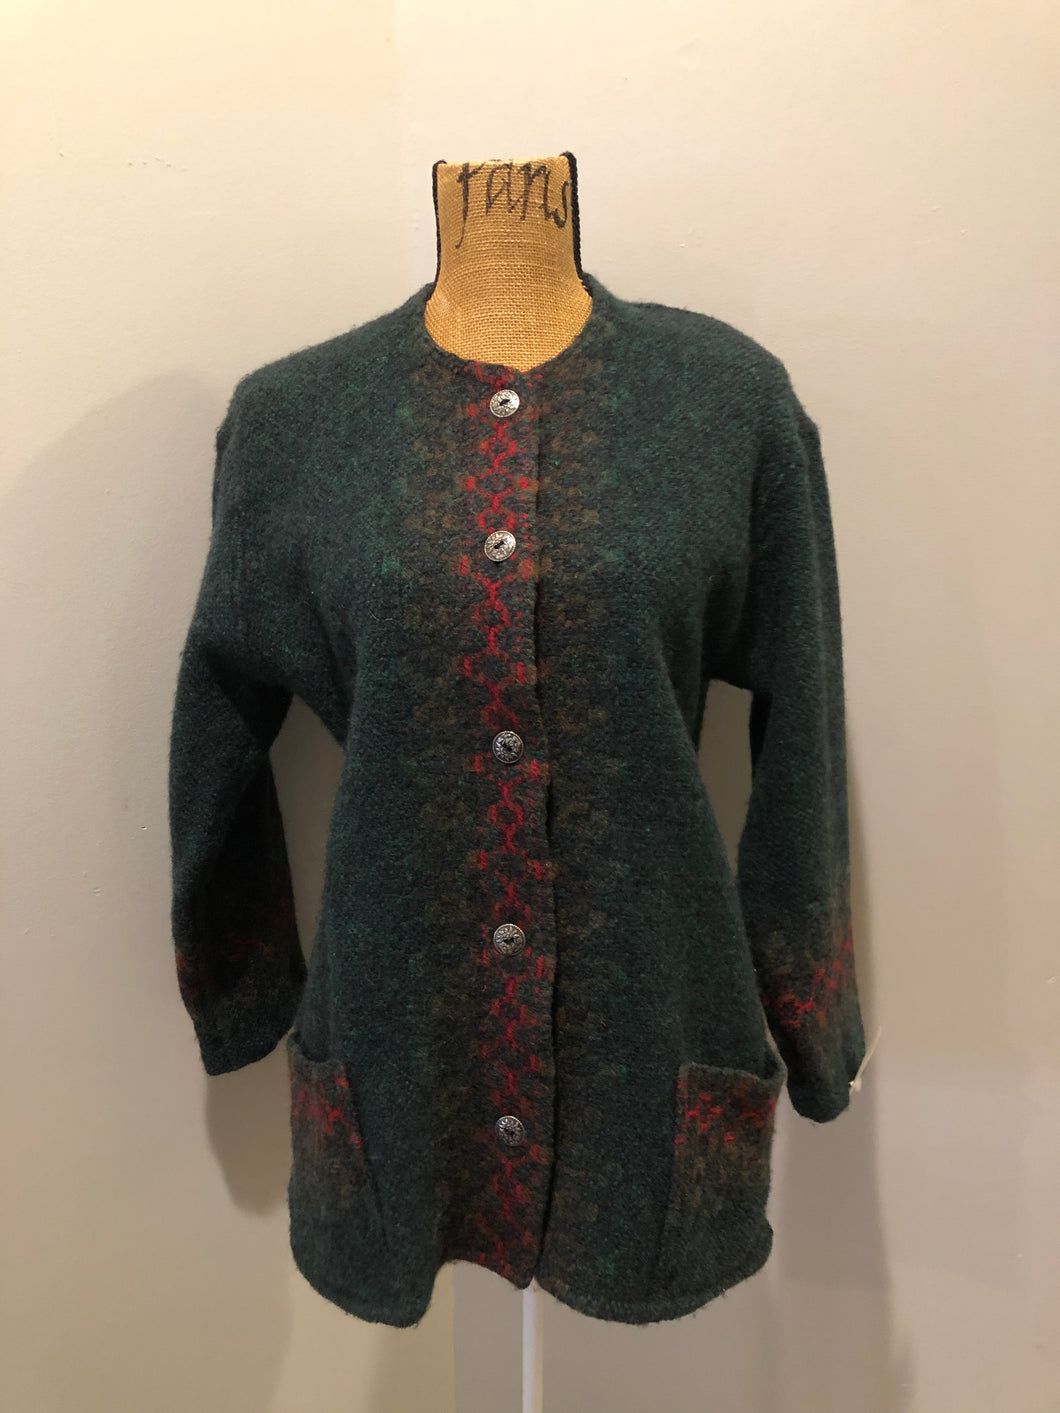 Deweevers wovens 100% wool cardigan in deep green with red design woven in, patch pockets and silver buttons with floral design. Made in Aylesford, NS. Size medium.